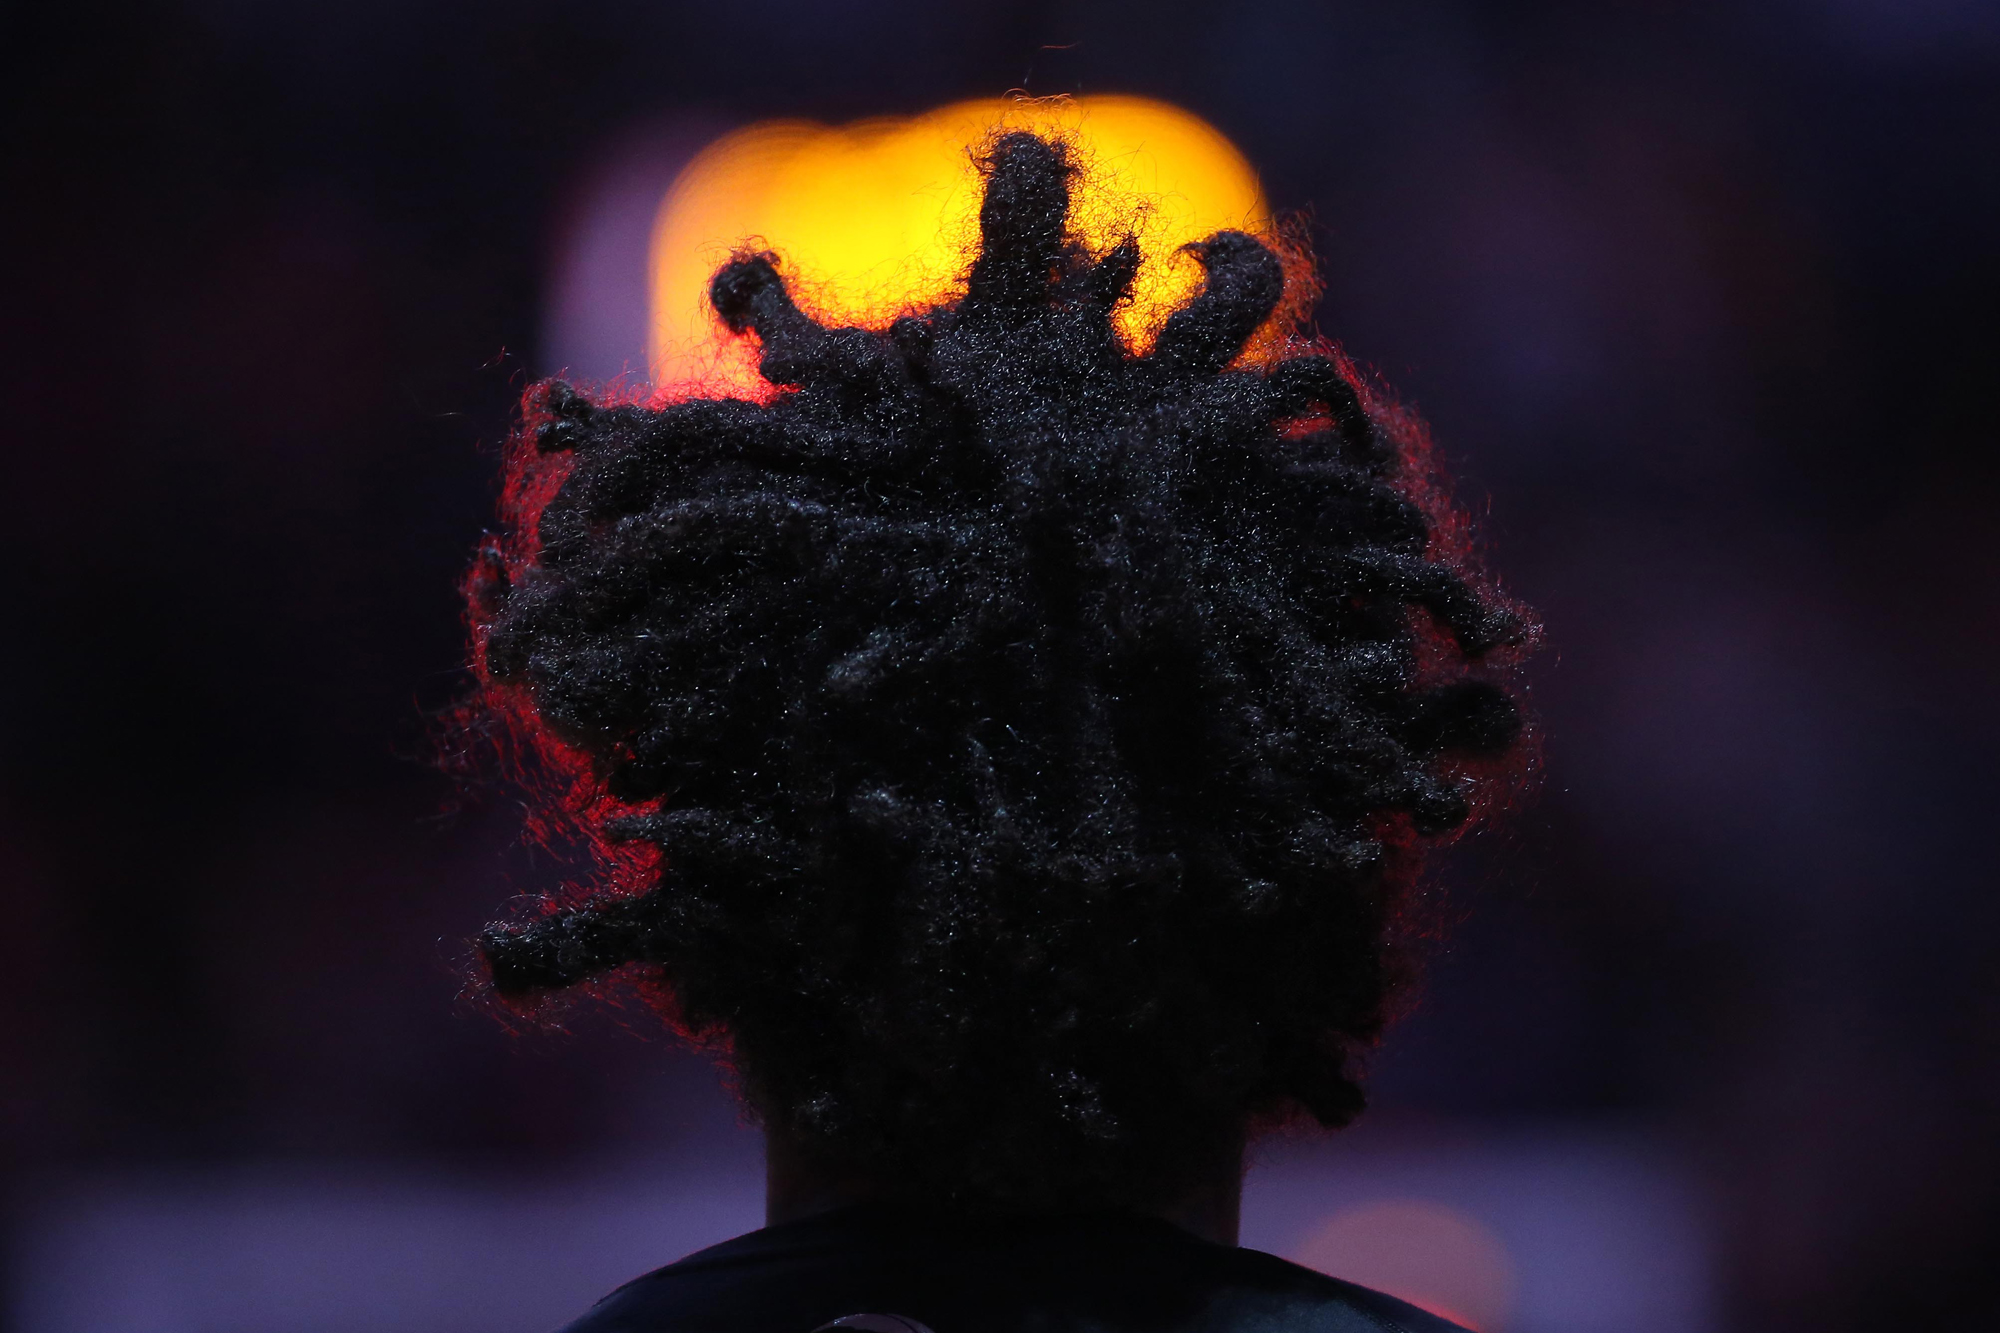 Toronto Raptors guard Lucas Nogueira (92) stands for the playing of the anthems before the start of their game against the Atlanta Hawks at Air Canada Centre.